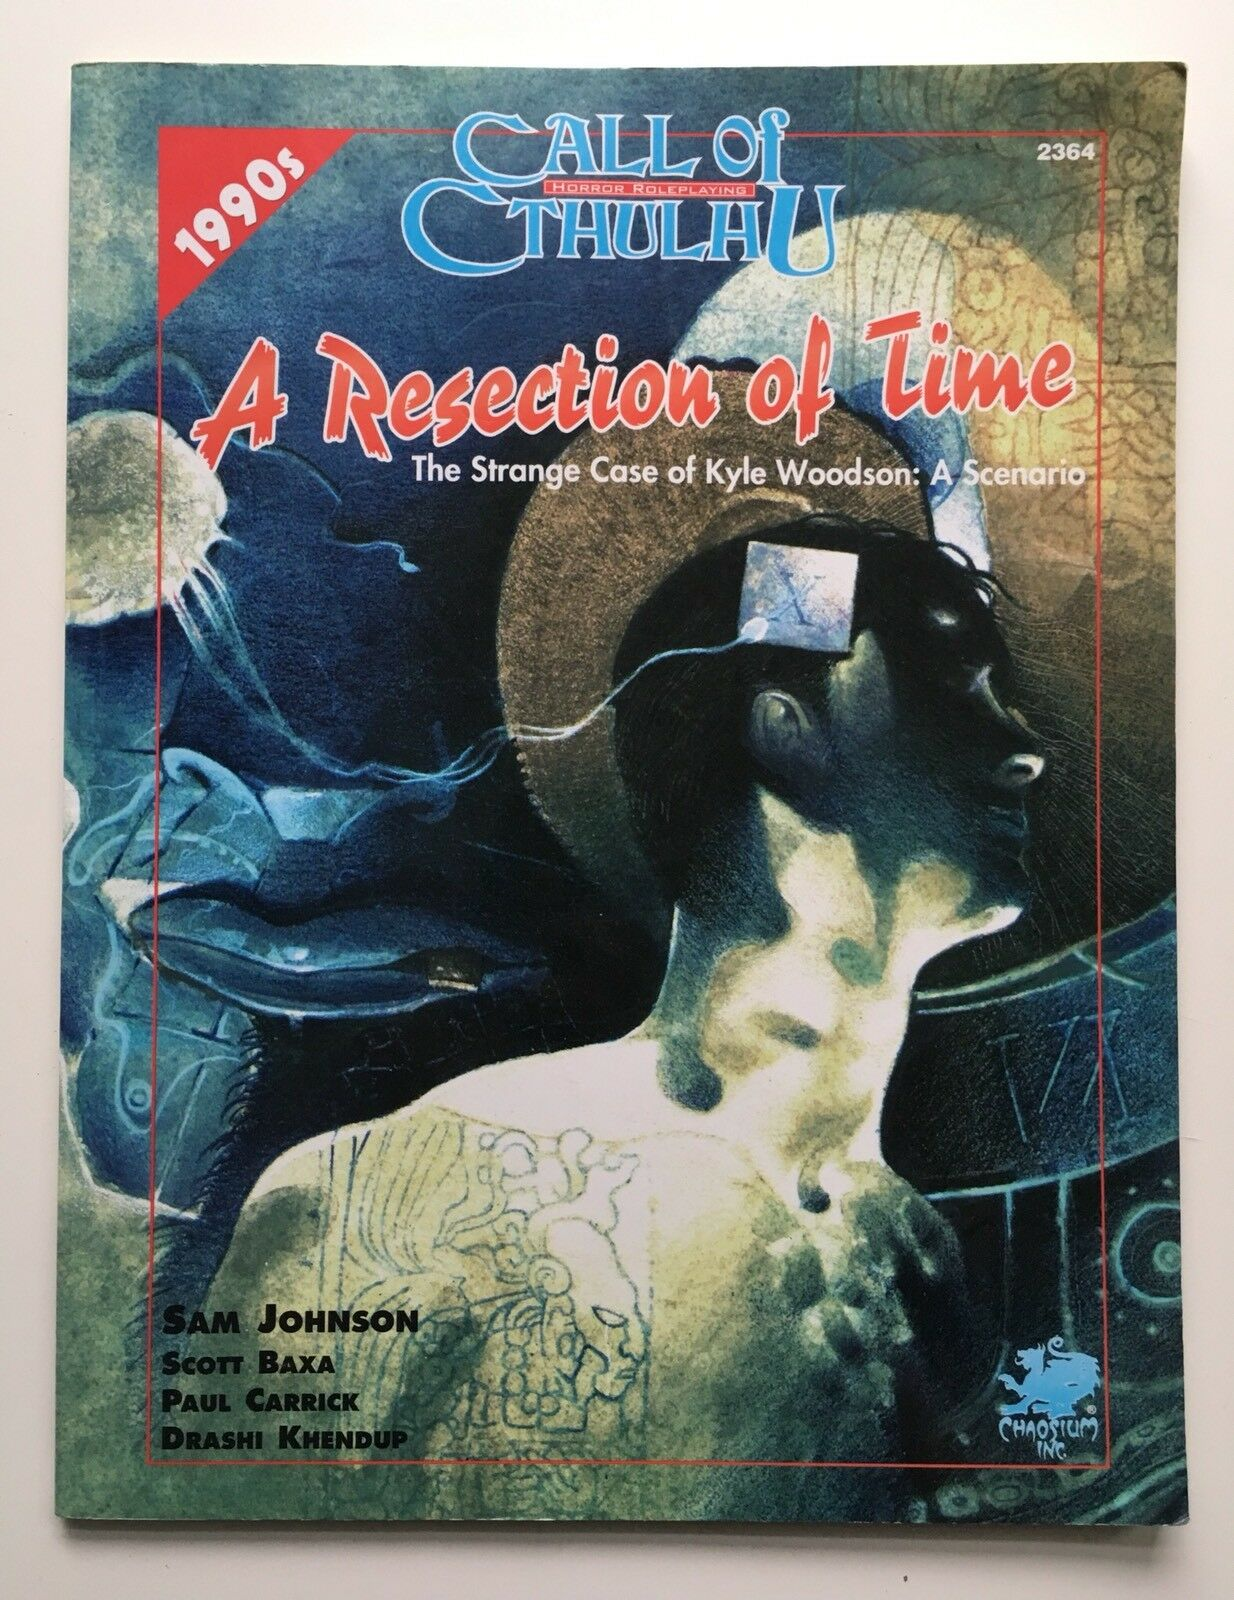 Call of Cthulhu Cthulhu Cthulhu - A Resection of Time - Strange Case Kyle Woodson Chaosium 2364 28eddd